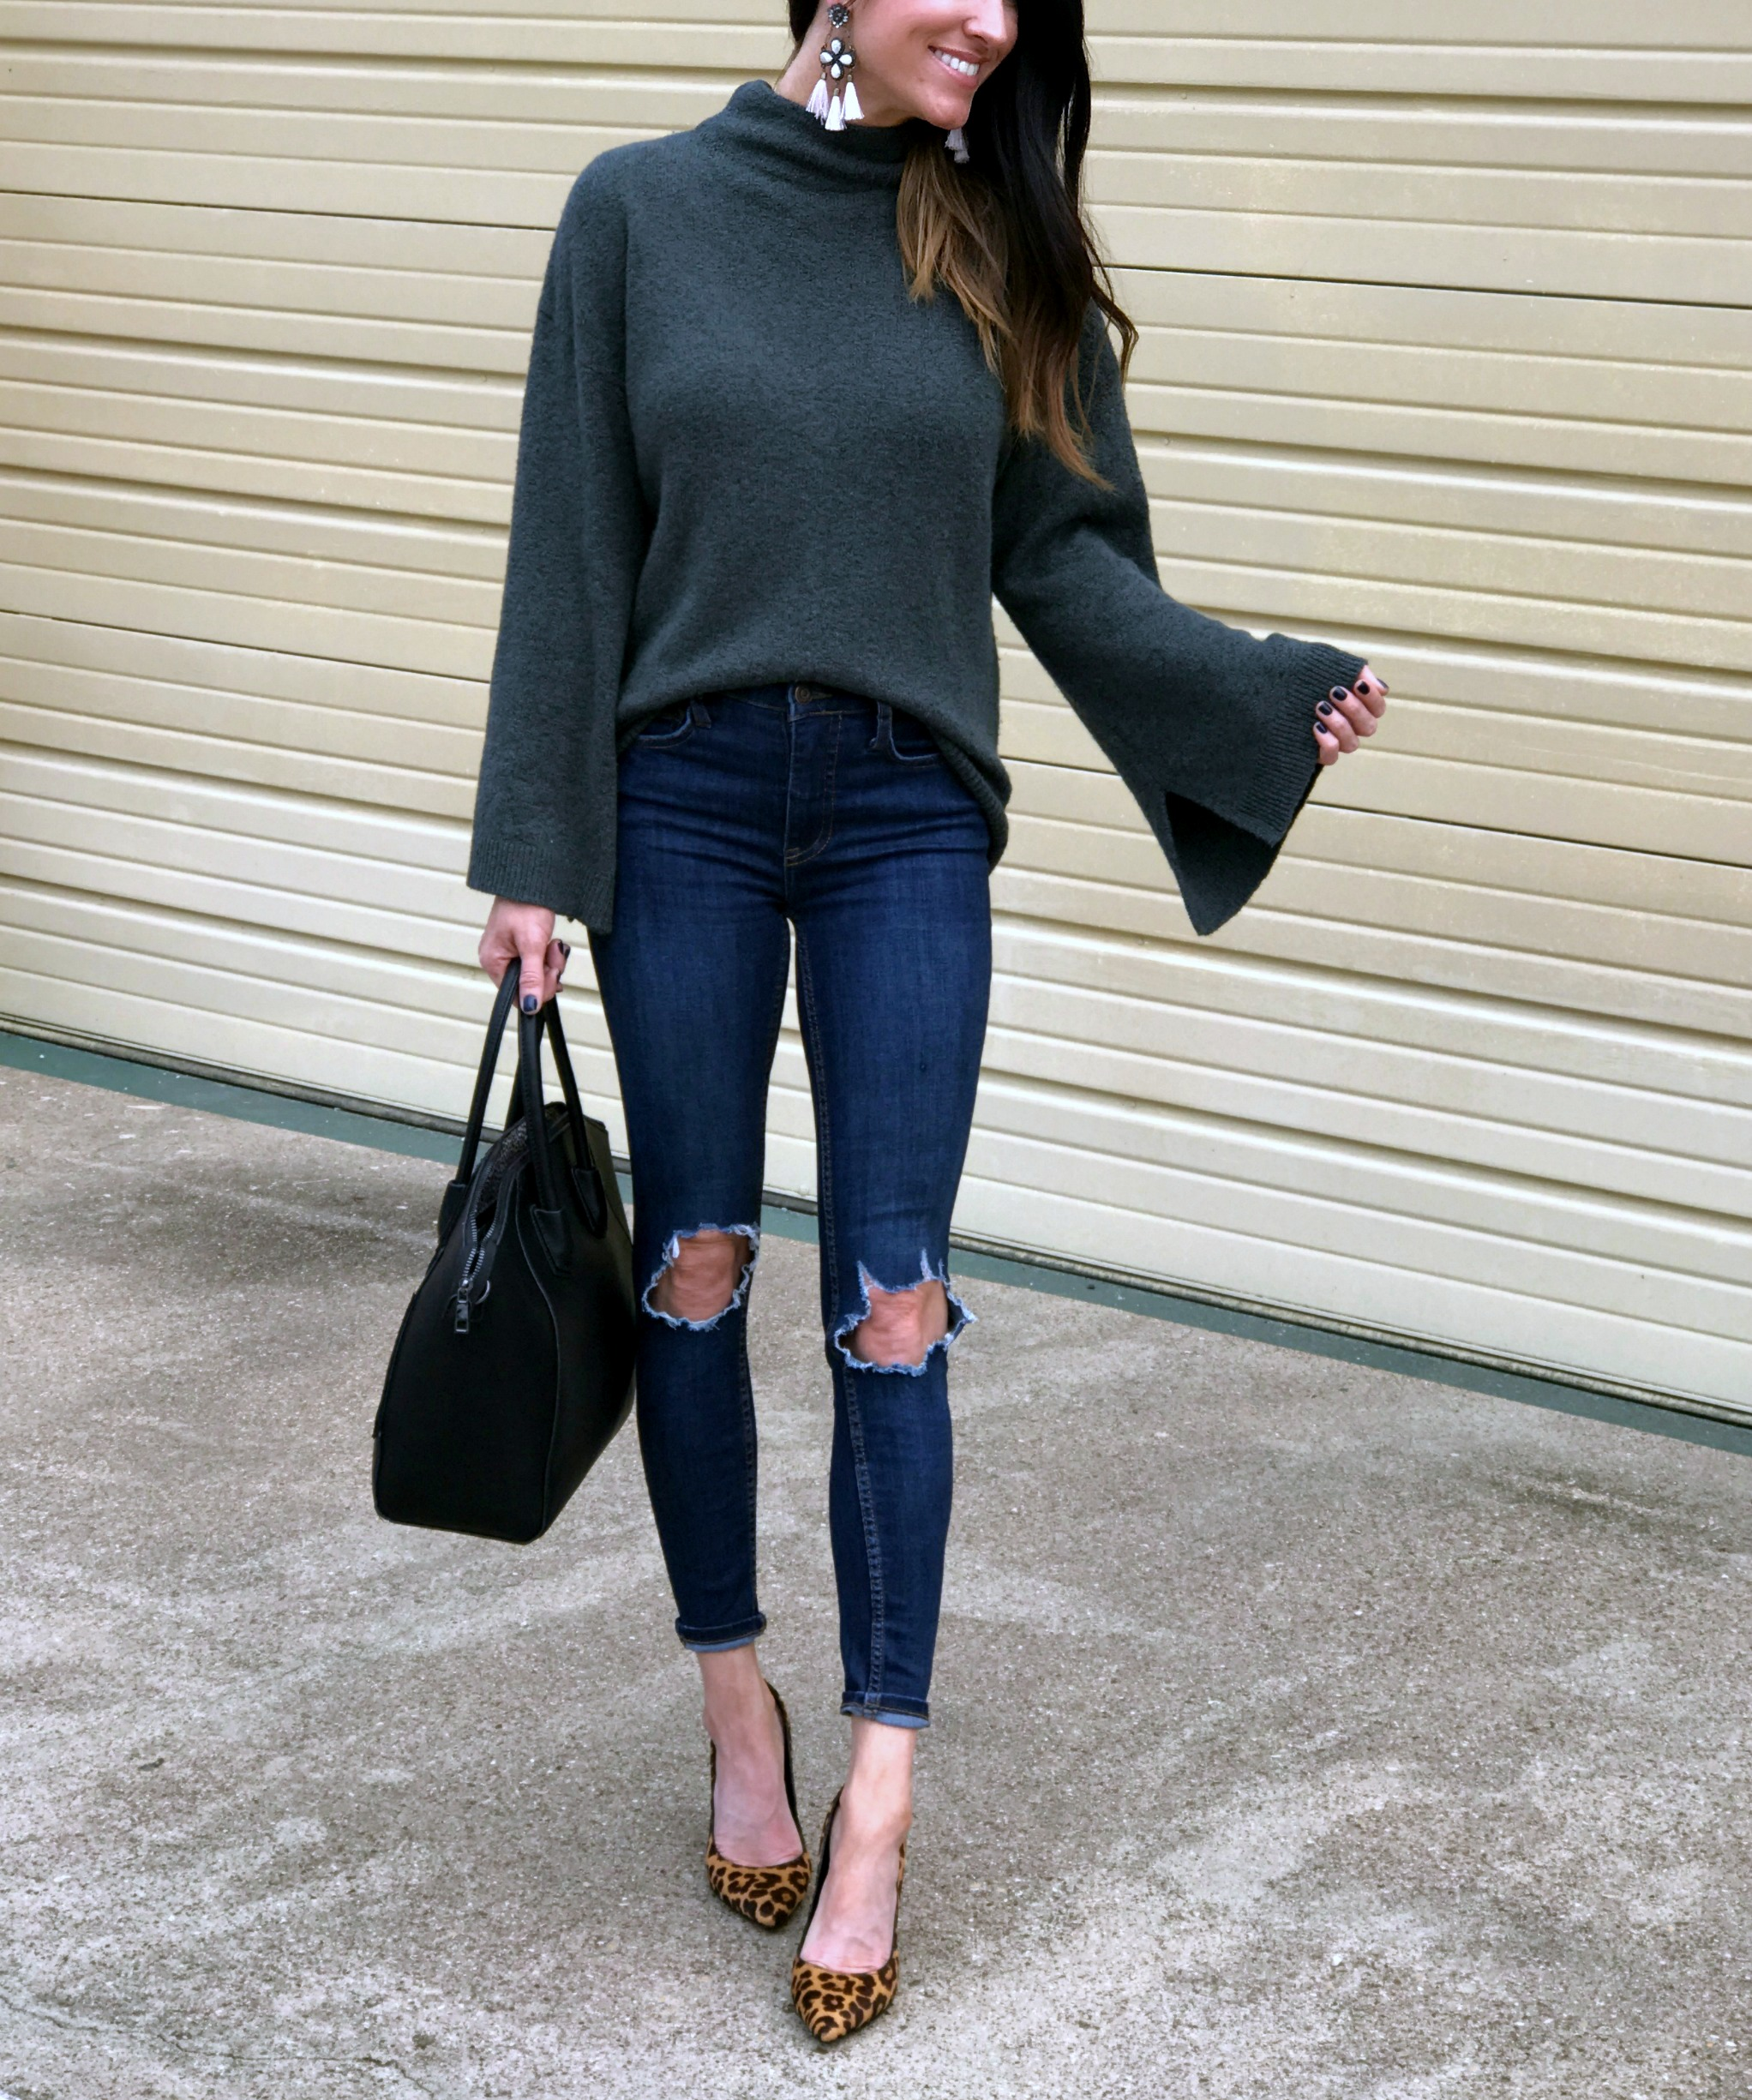 Bell Sleeves and Leopard